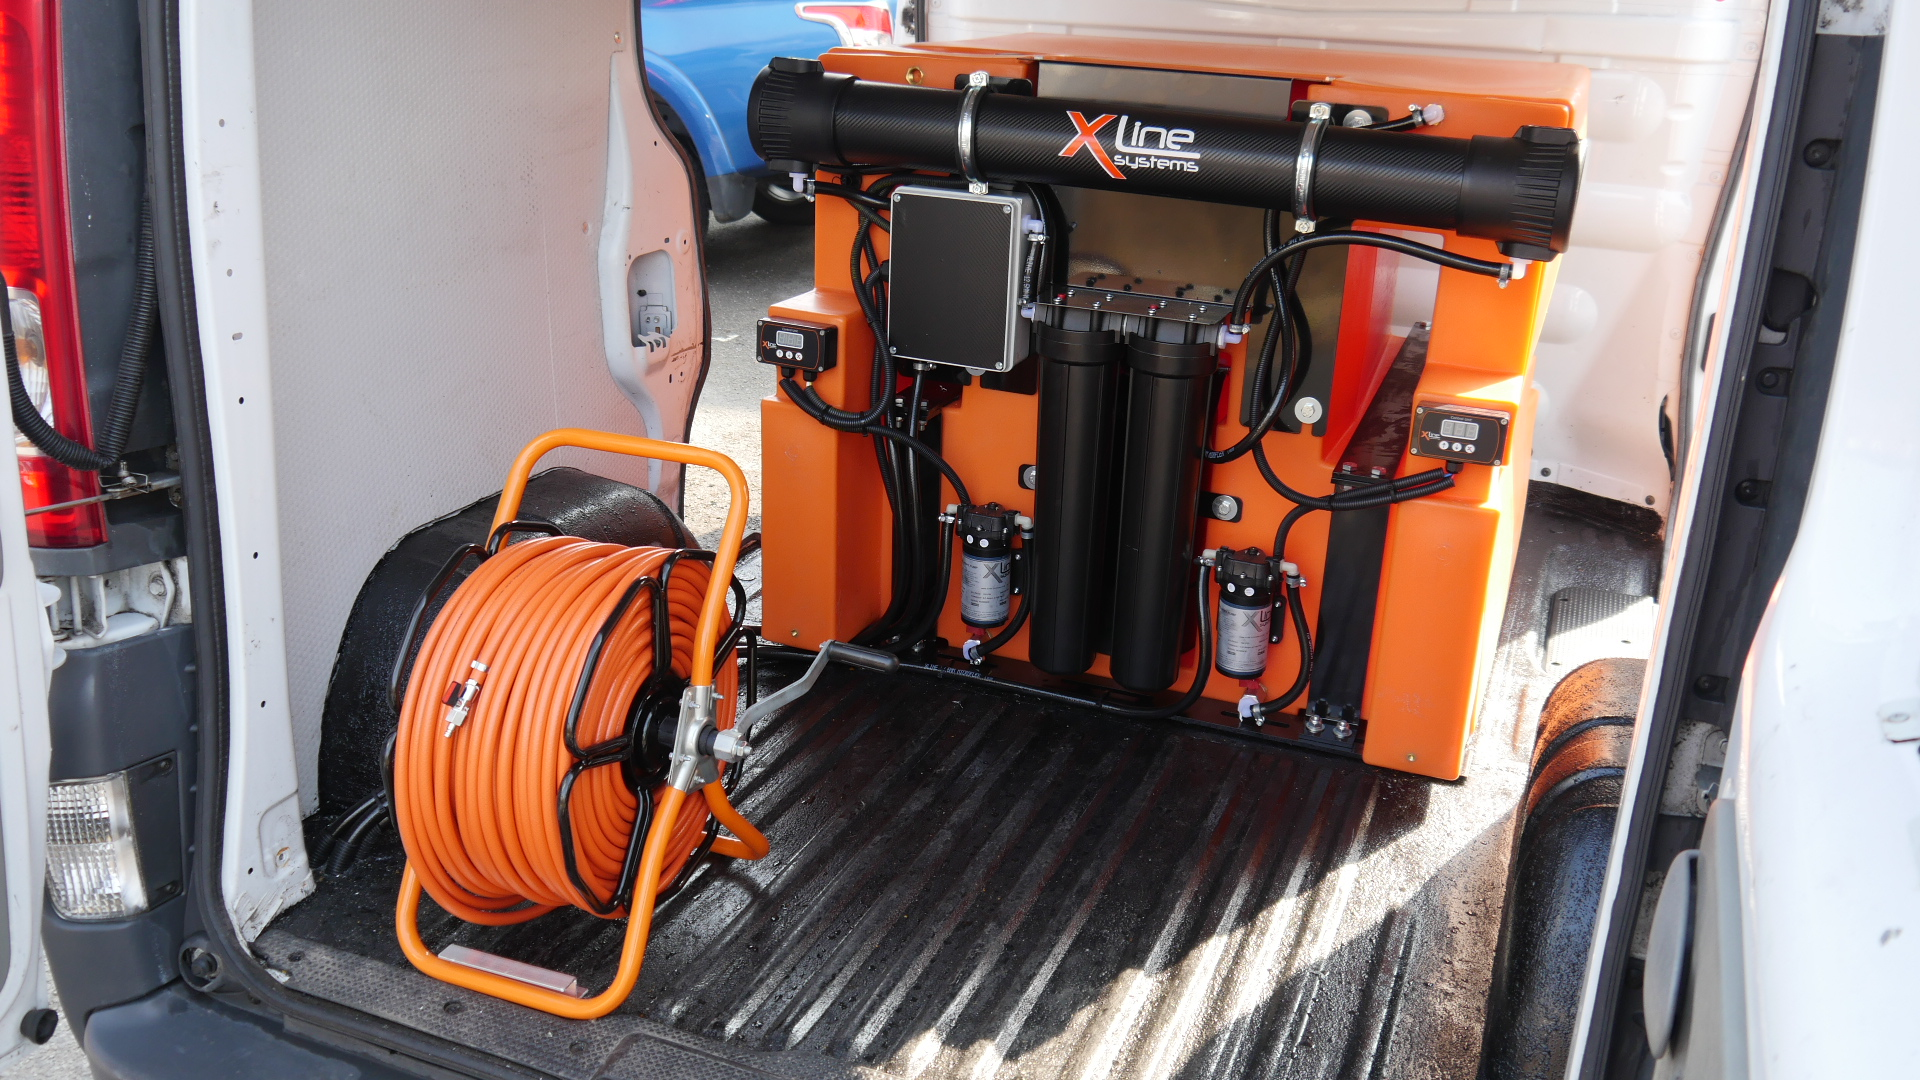 500ltr Water Fed Pole Window Cleaning System